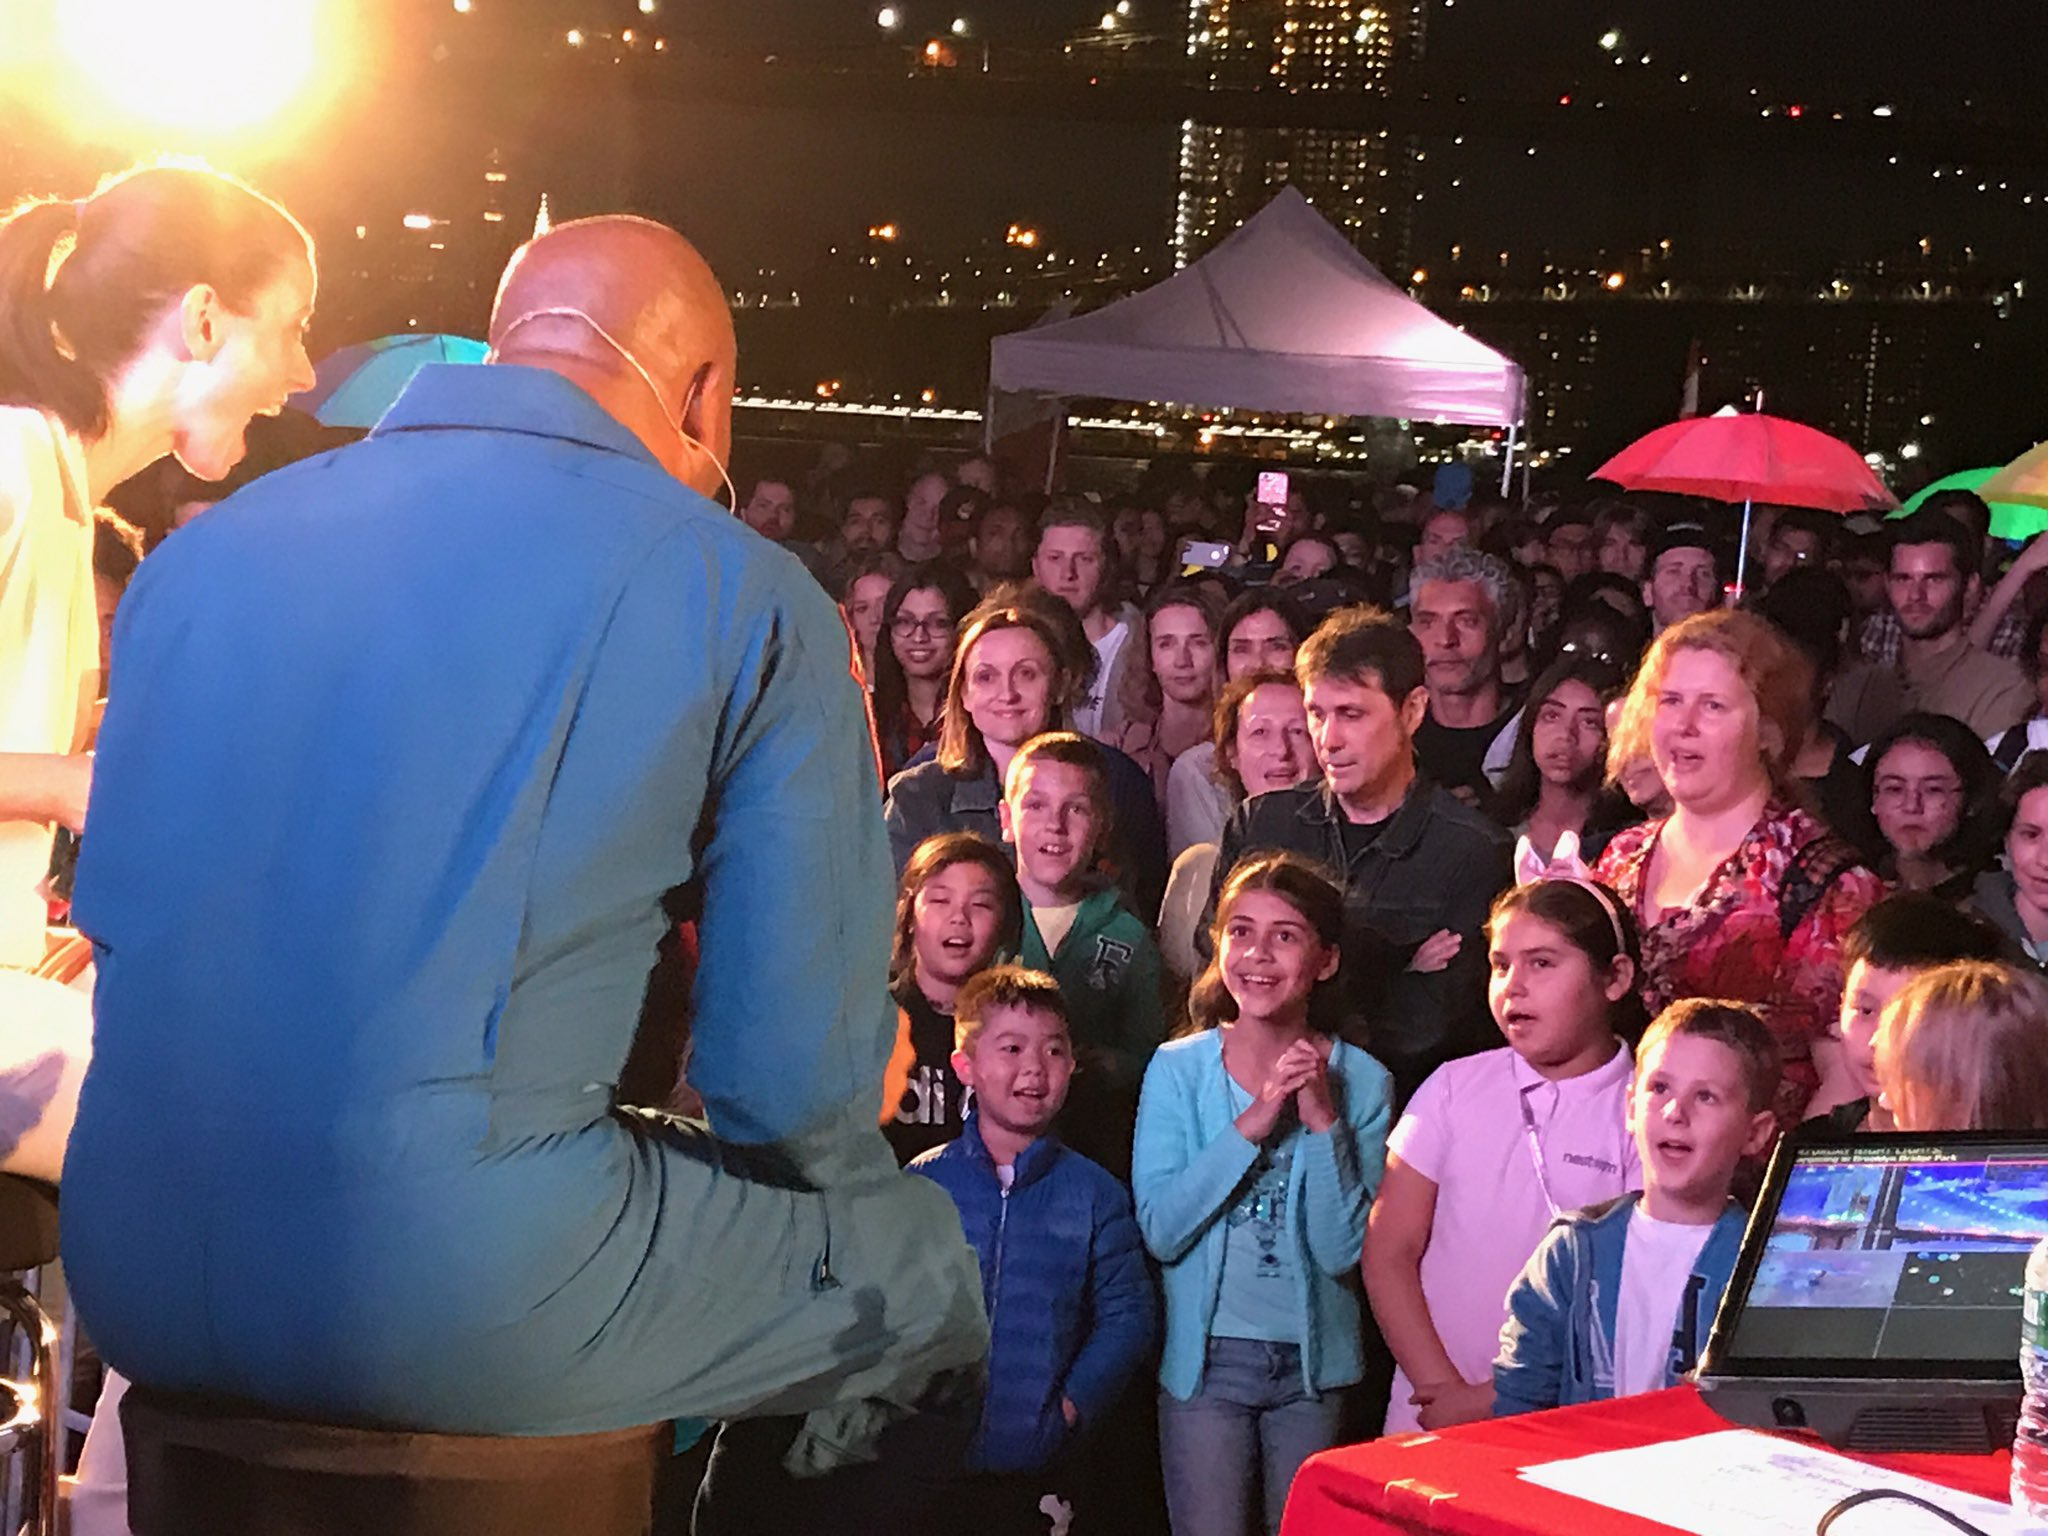 Let's teach all of our children to love and not hate. With you #London ❤️���� https://t.co/8butFd4Idm